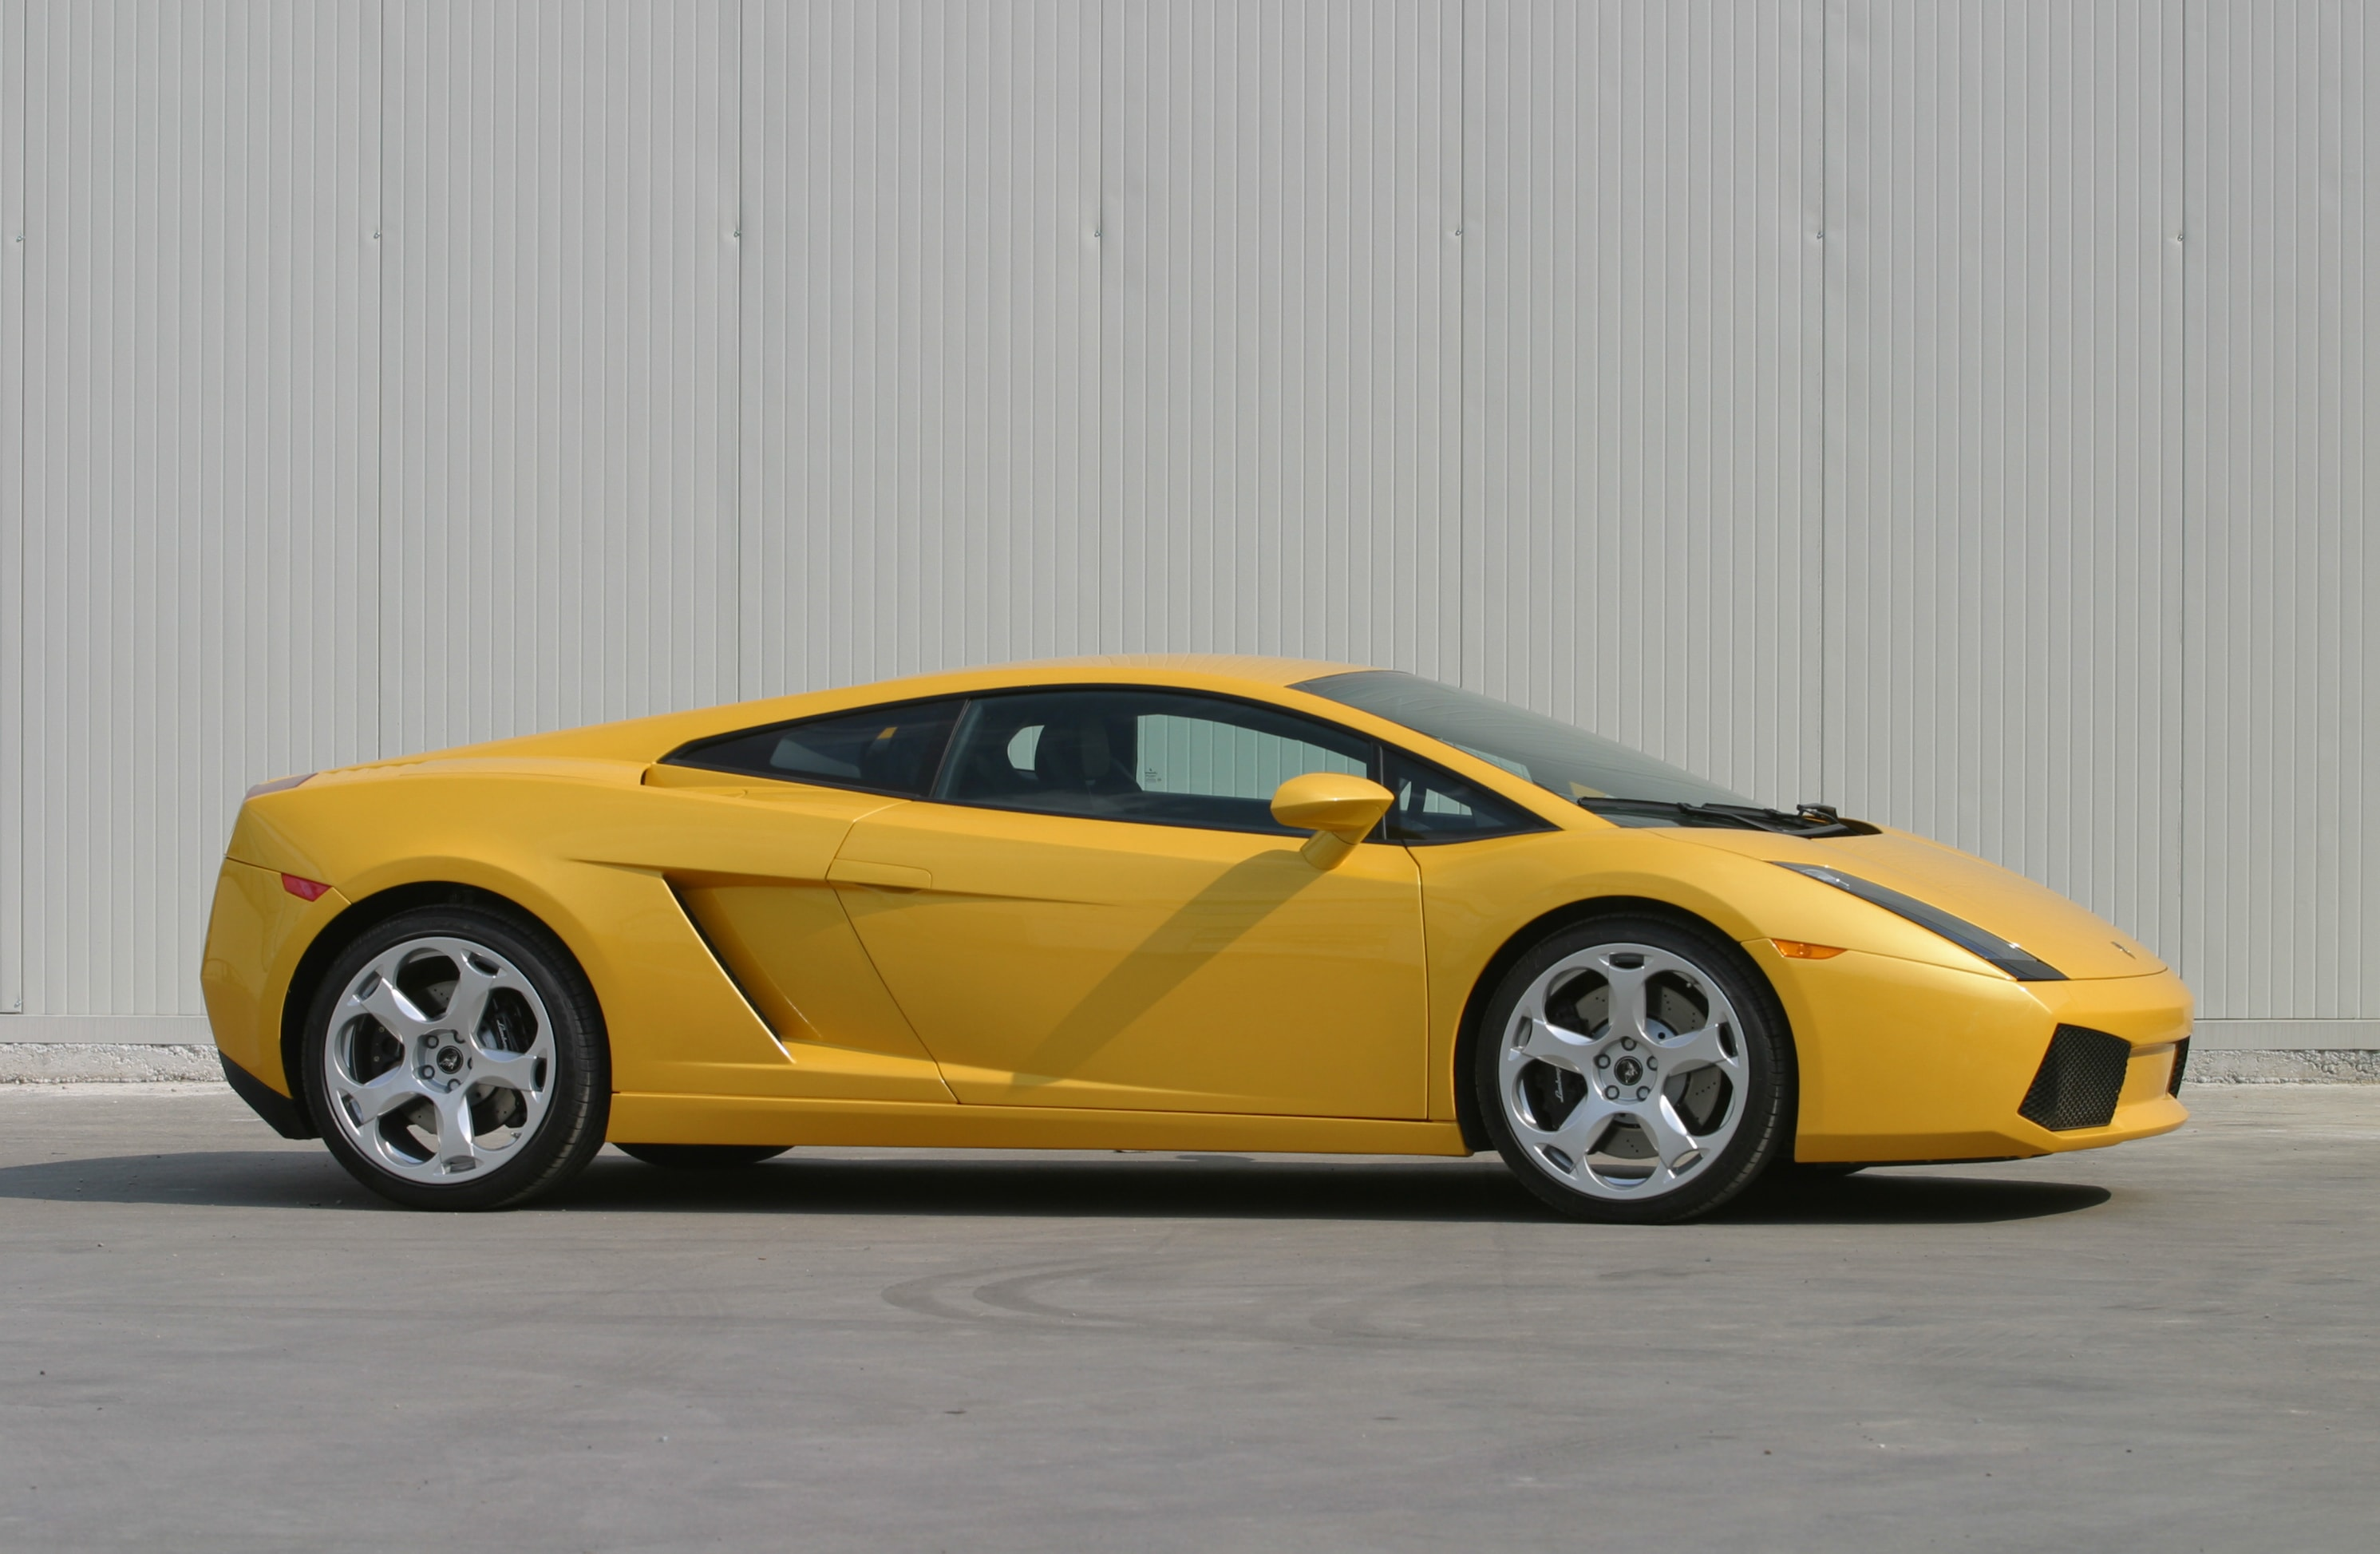 2003 Lamborghini Gallardo Background